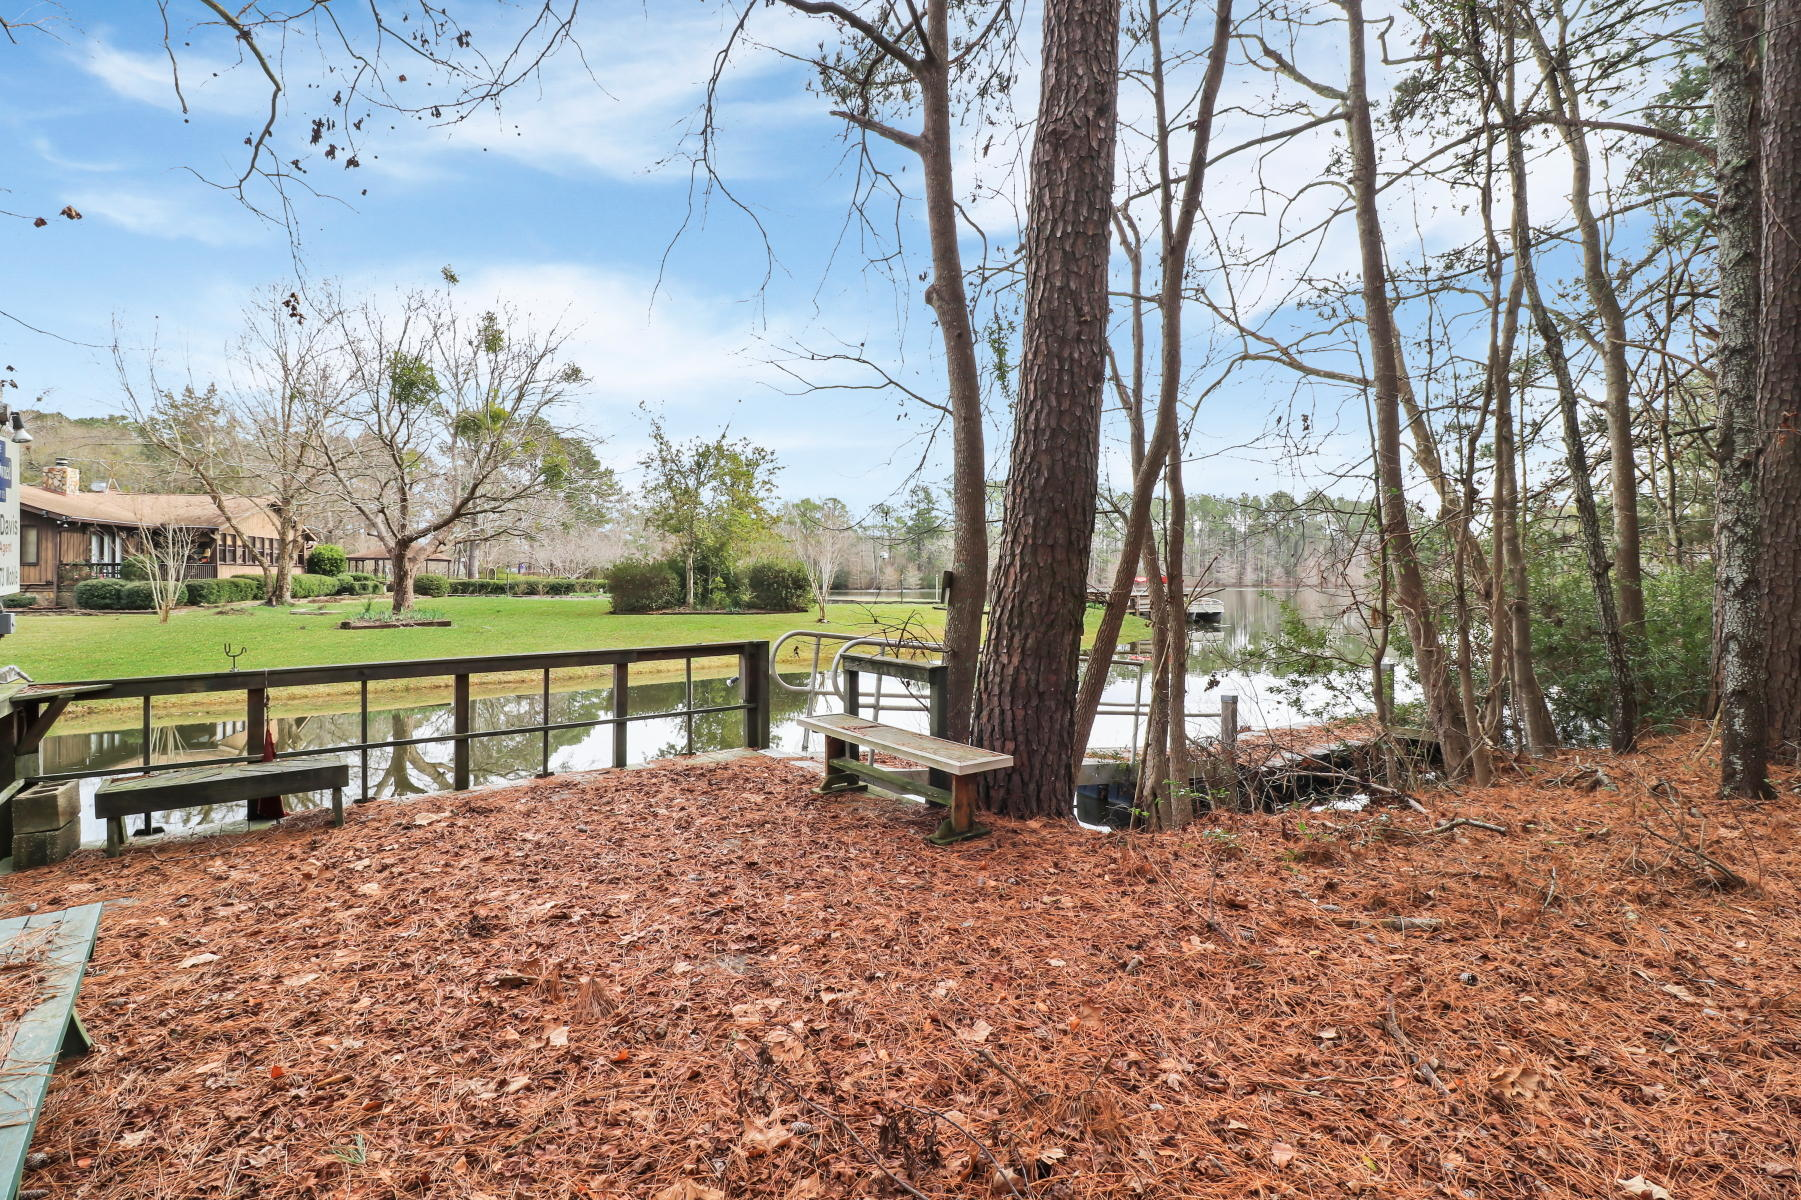 Plantation II Homes For Sale - 141 Meredith, Eutawville, SC - 0